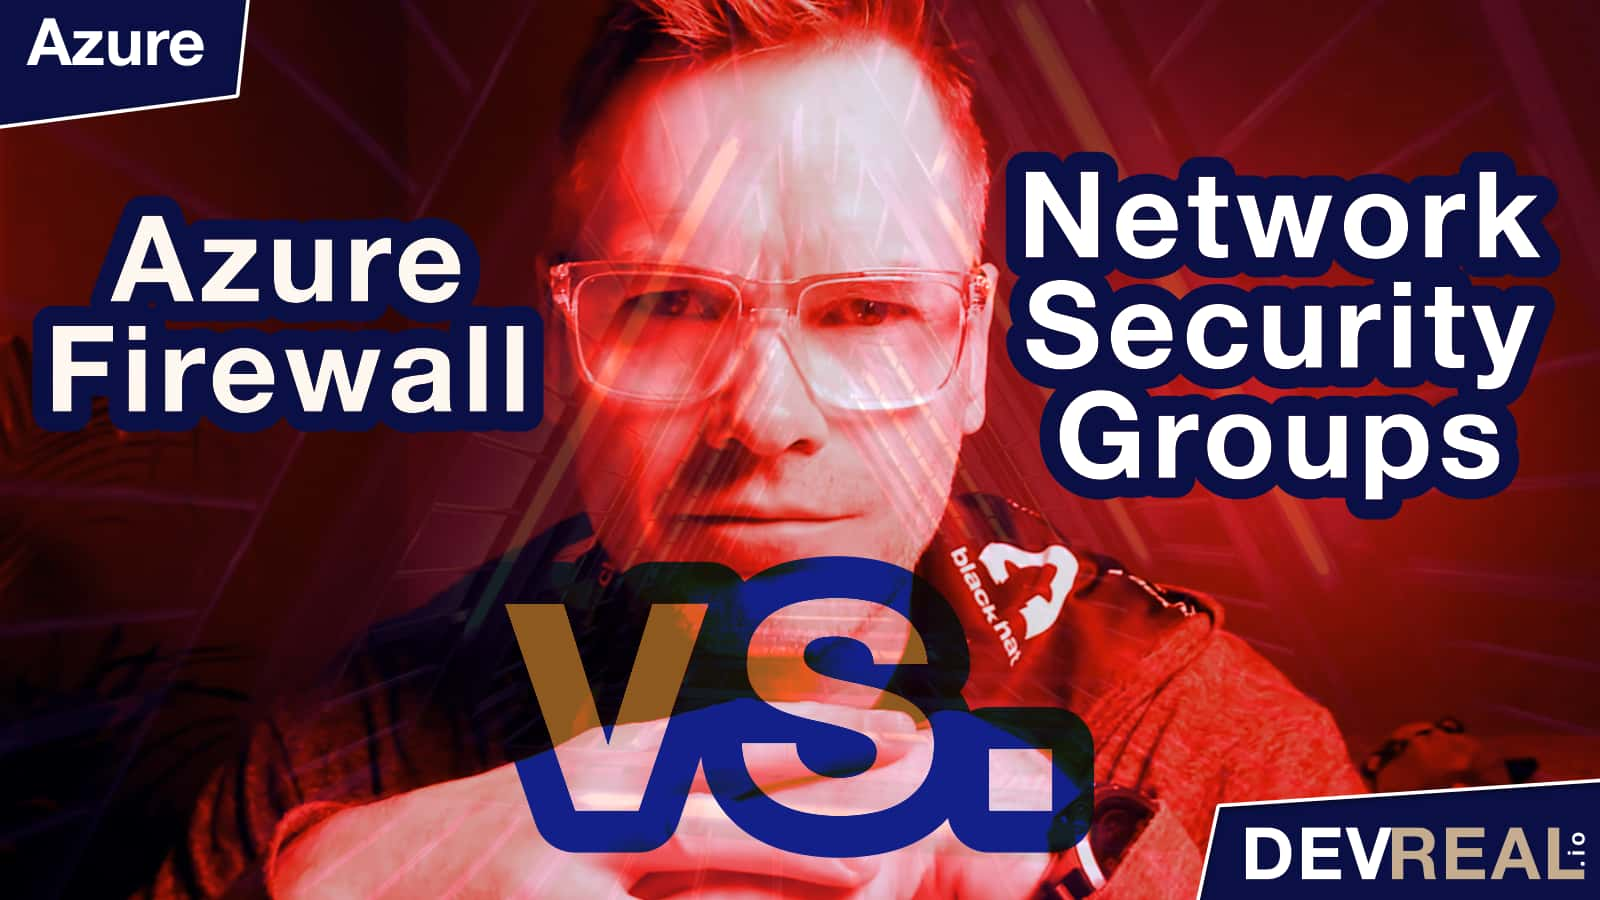 How is Azure Firewall different from Network Security Groups?